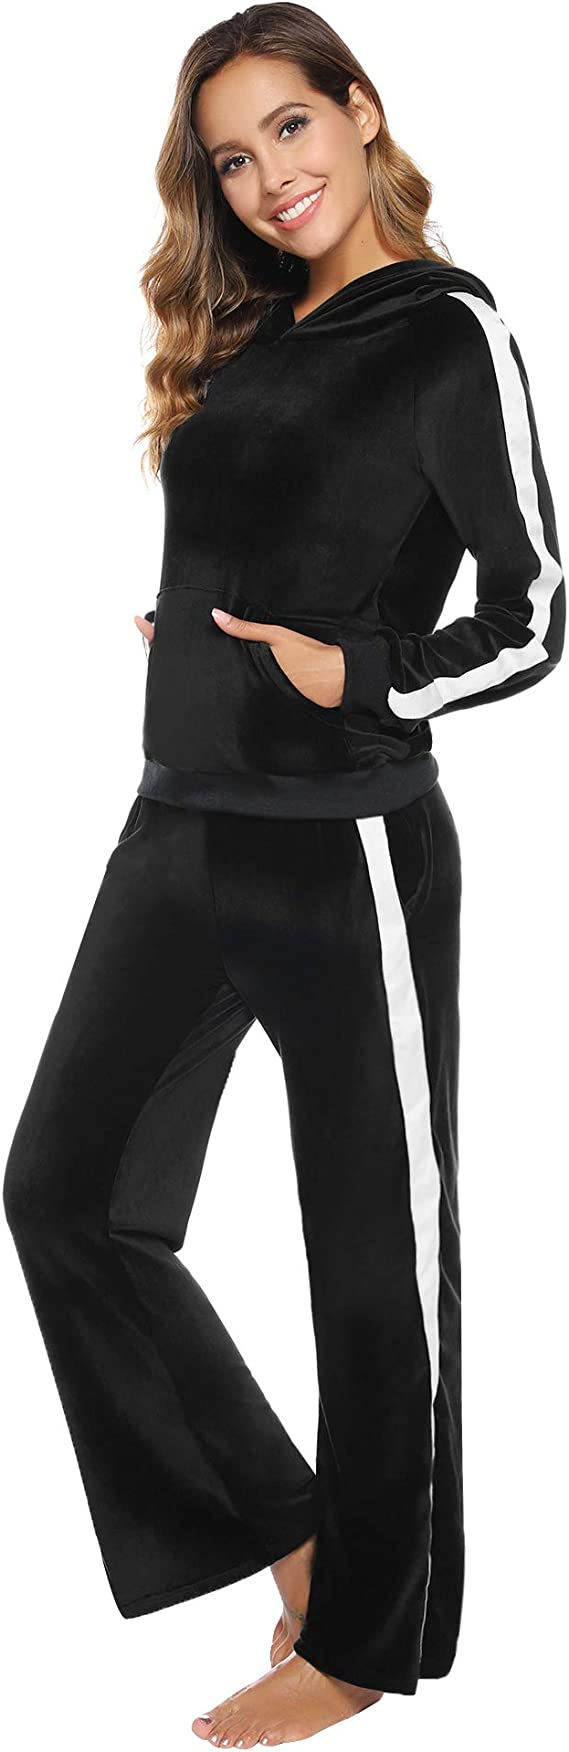 2 Piece Track Suit Set High Low Top and Bottoms Casual Loungewear Sweatshirt